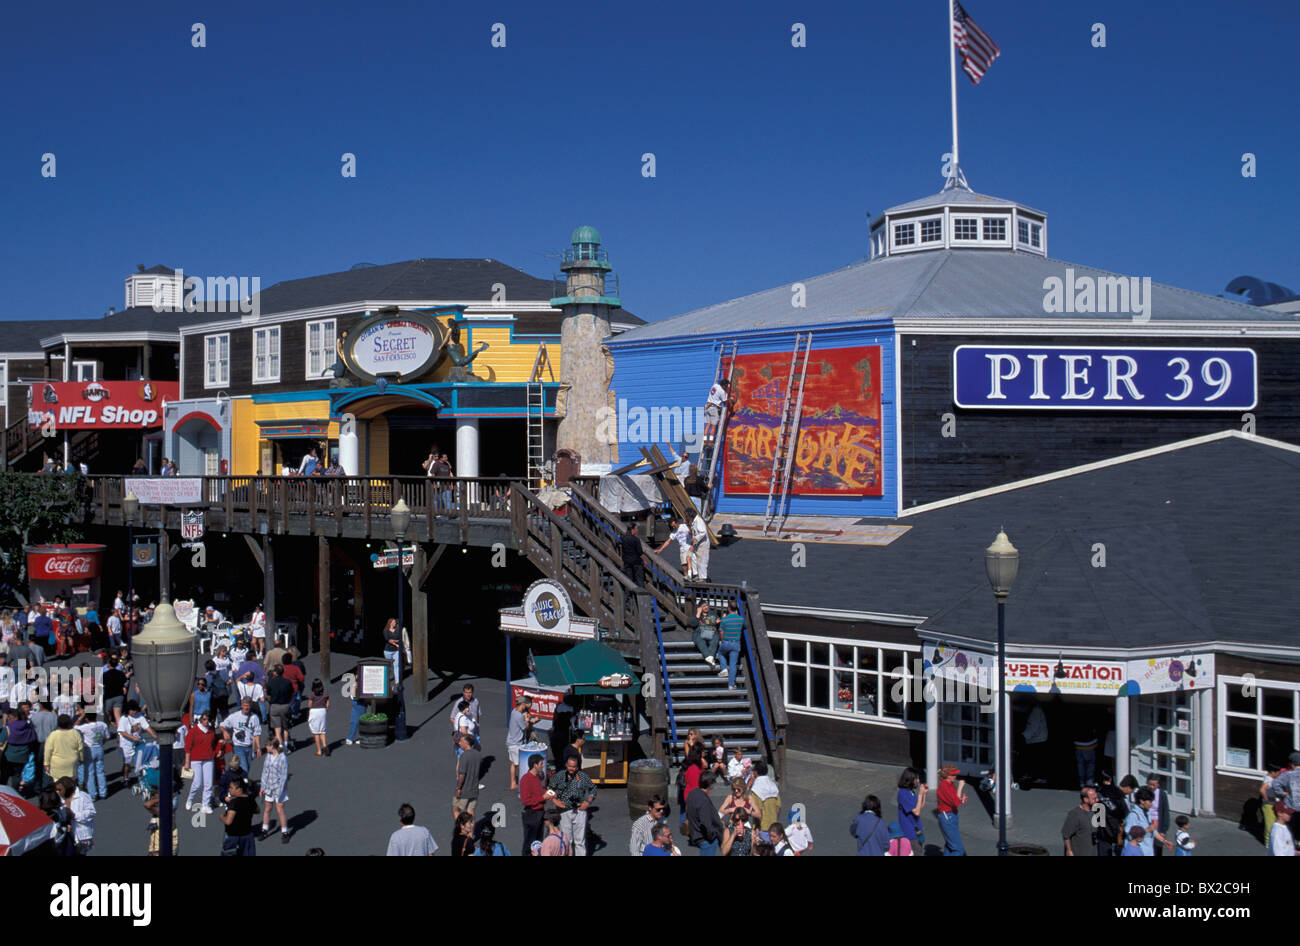 pier jett 39 stores shops dealings people lives San Francisco California USA United States America - Stock Image